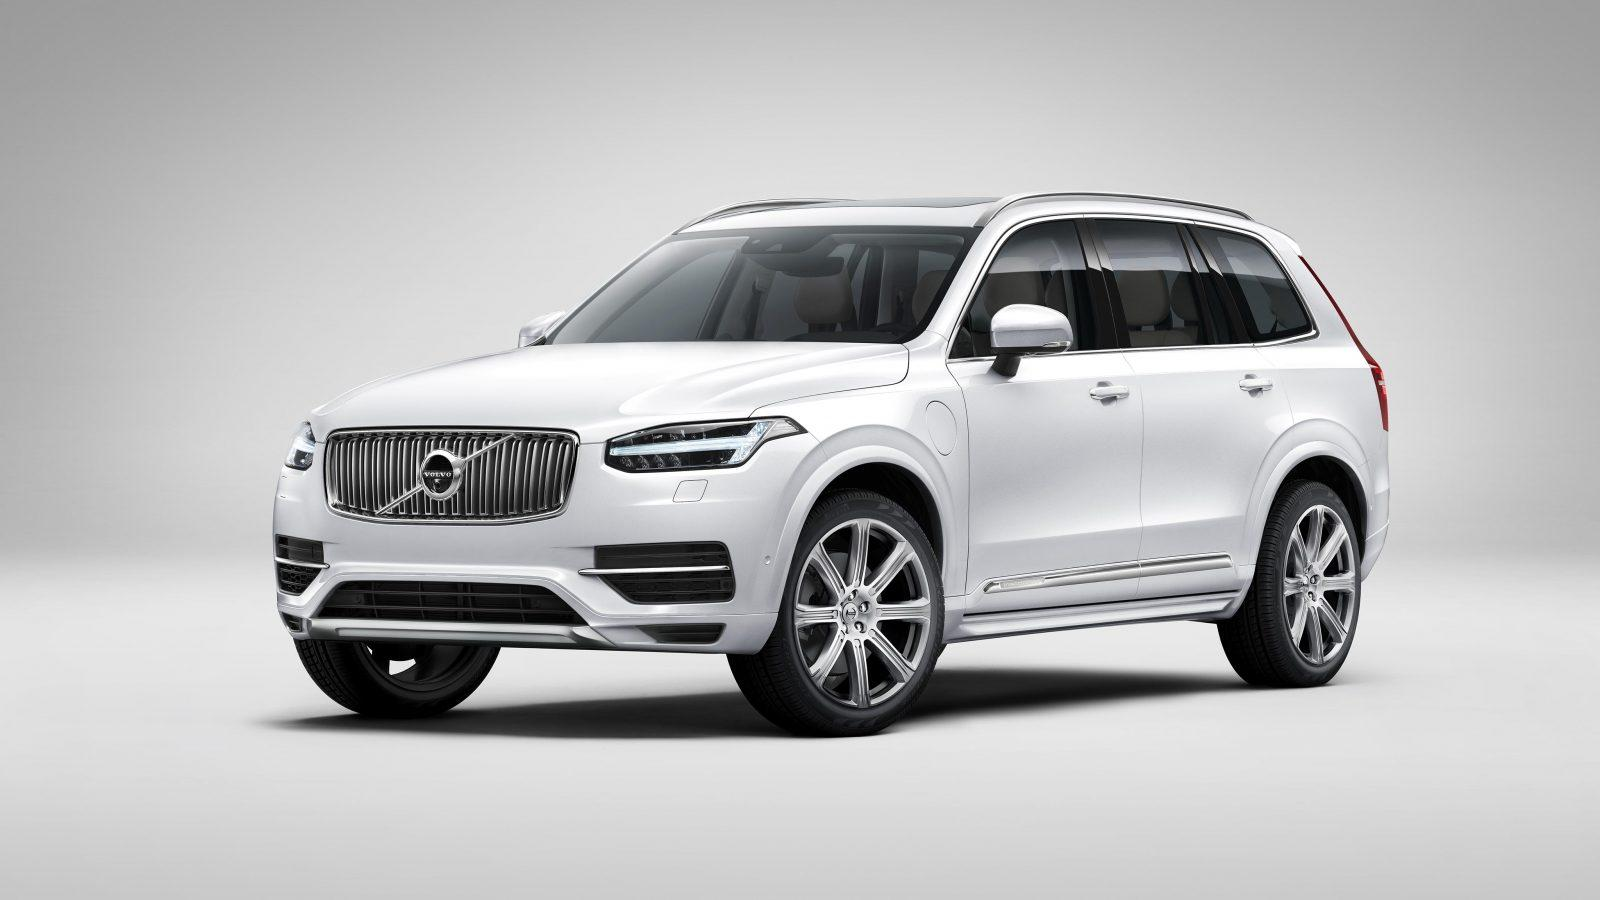 car suv review new price buy expert drive test volvo